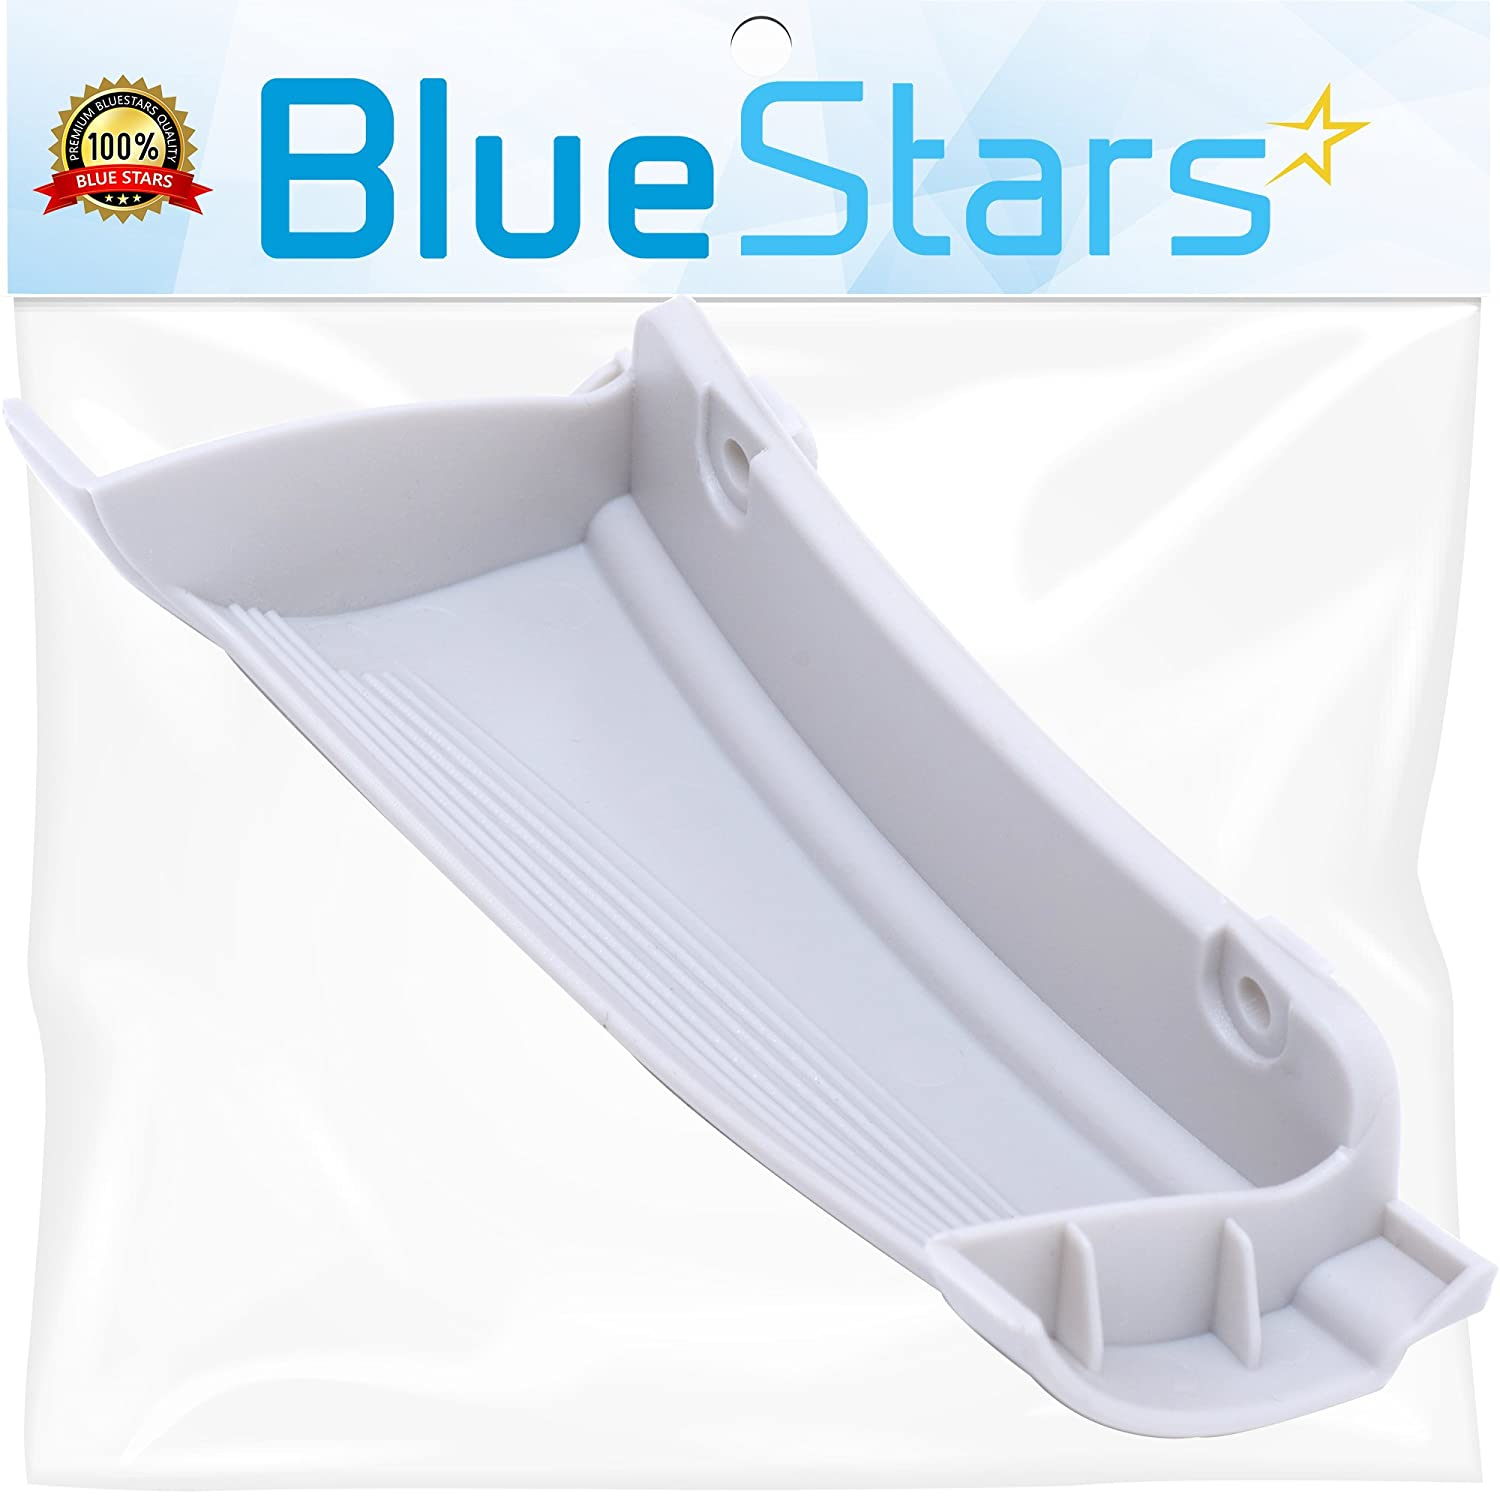 Ultra Durable 8181846 Washer Door Handle Replacement by Blue Stars - Exact Fit for Whirlpool Washer - Replaces AP6011739 PS11744938 WP8181846VP